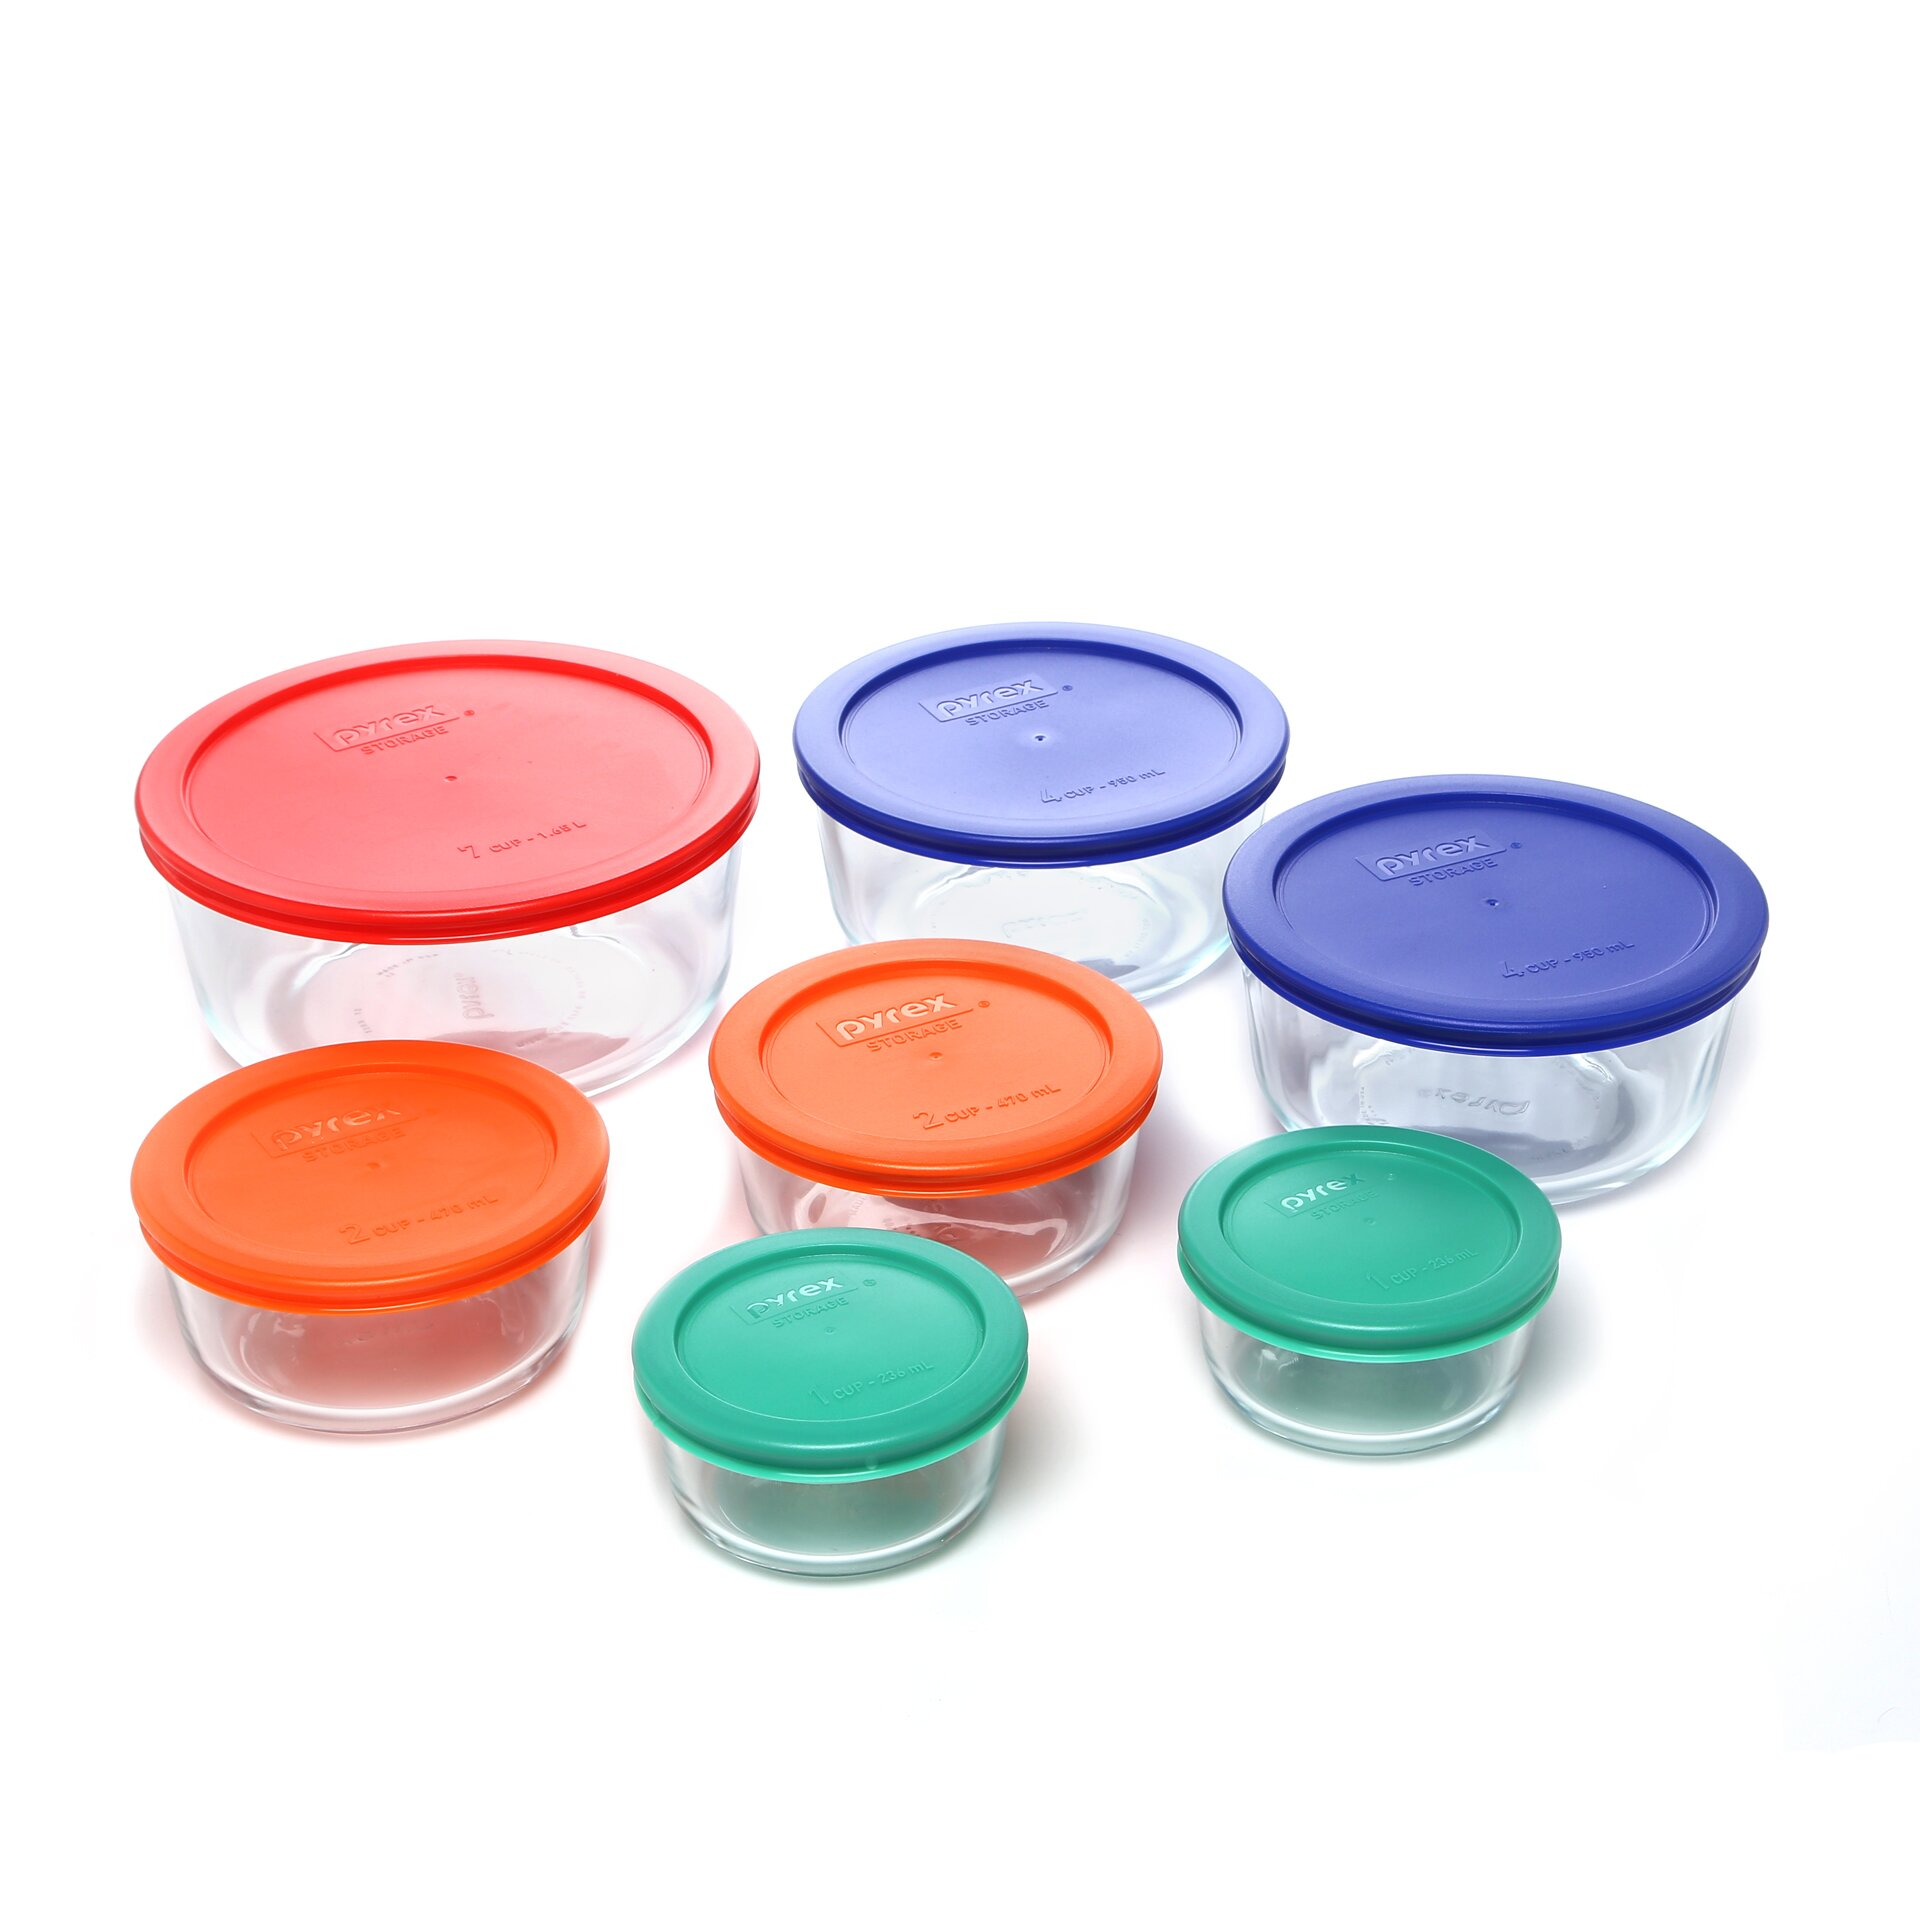 Product Description. Pyrex Simply Store Piece Glass Food Storage Set with Blue Lids pav-testcode.tk Transporting foods for lunches and picnics and storing leftovers for reheating is a cinch with the Pyrex Storage Plus set.